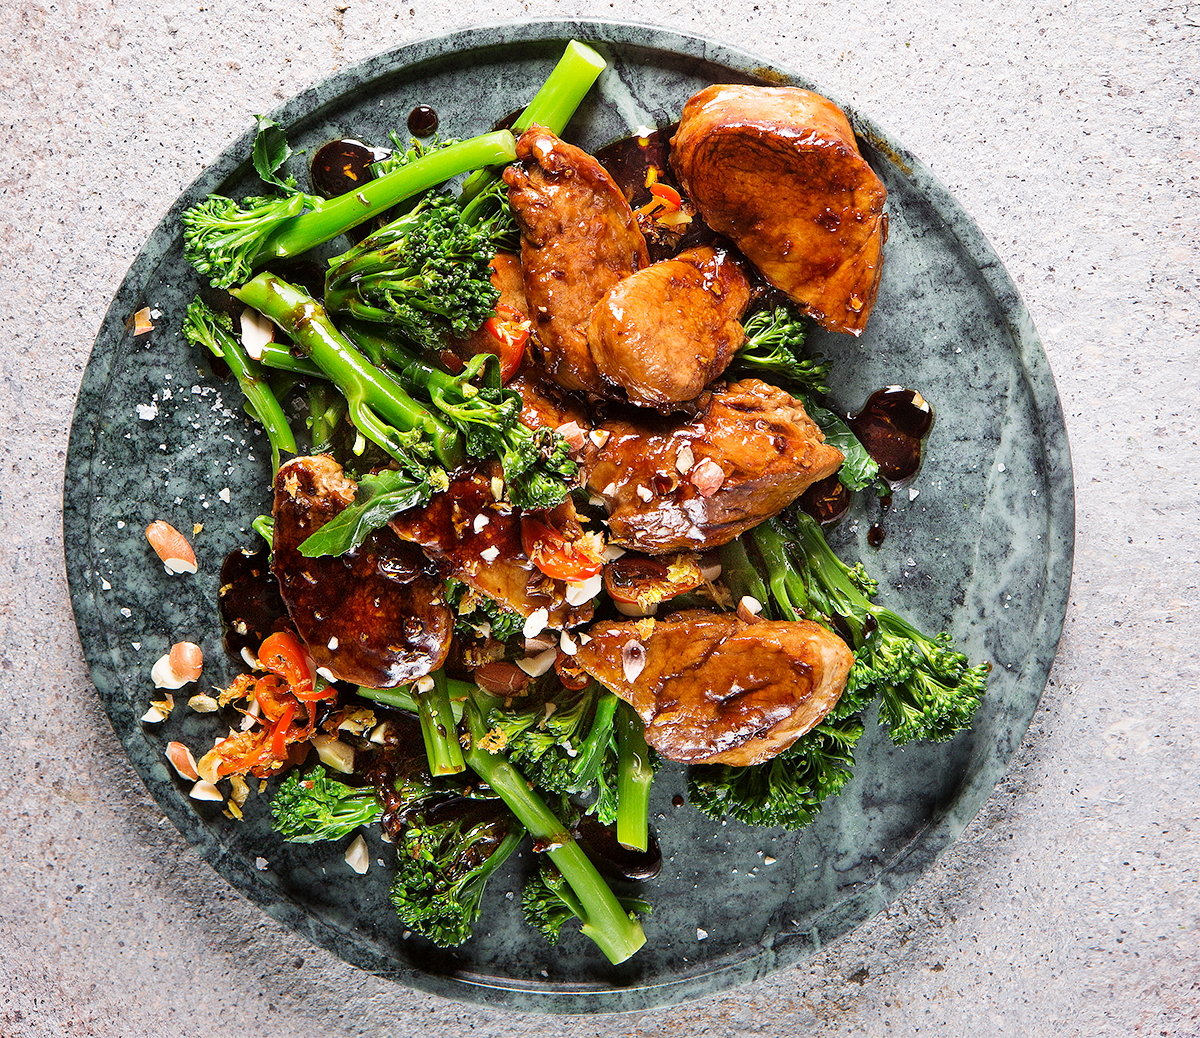 Quick-and-easy pork-and-Tenderstem broccoli stir-fry recipe